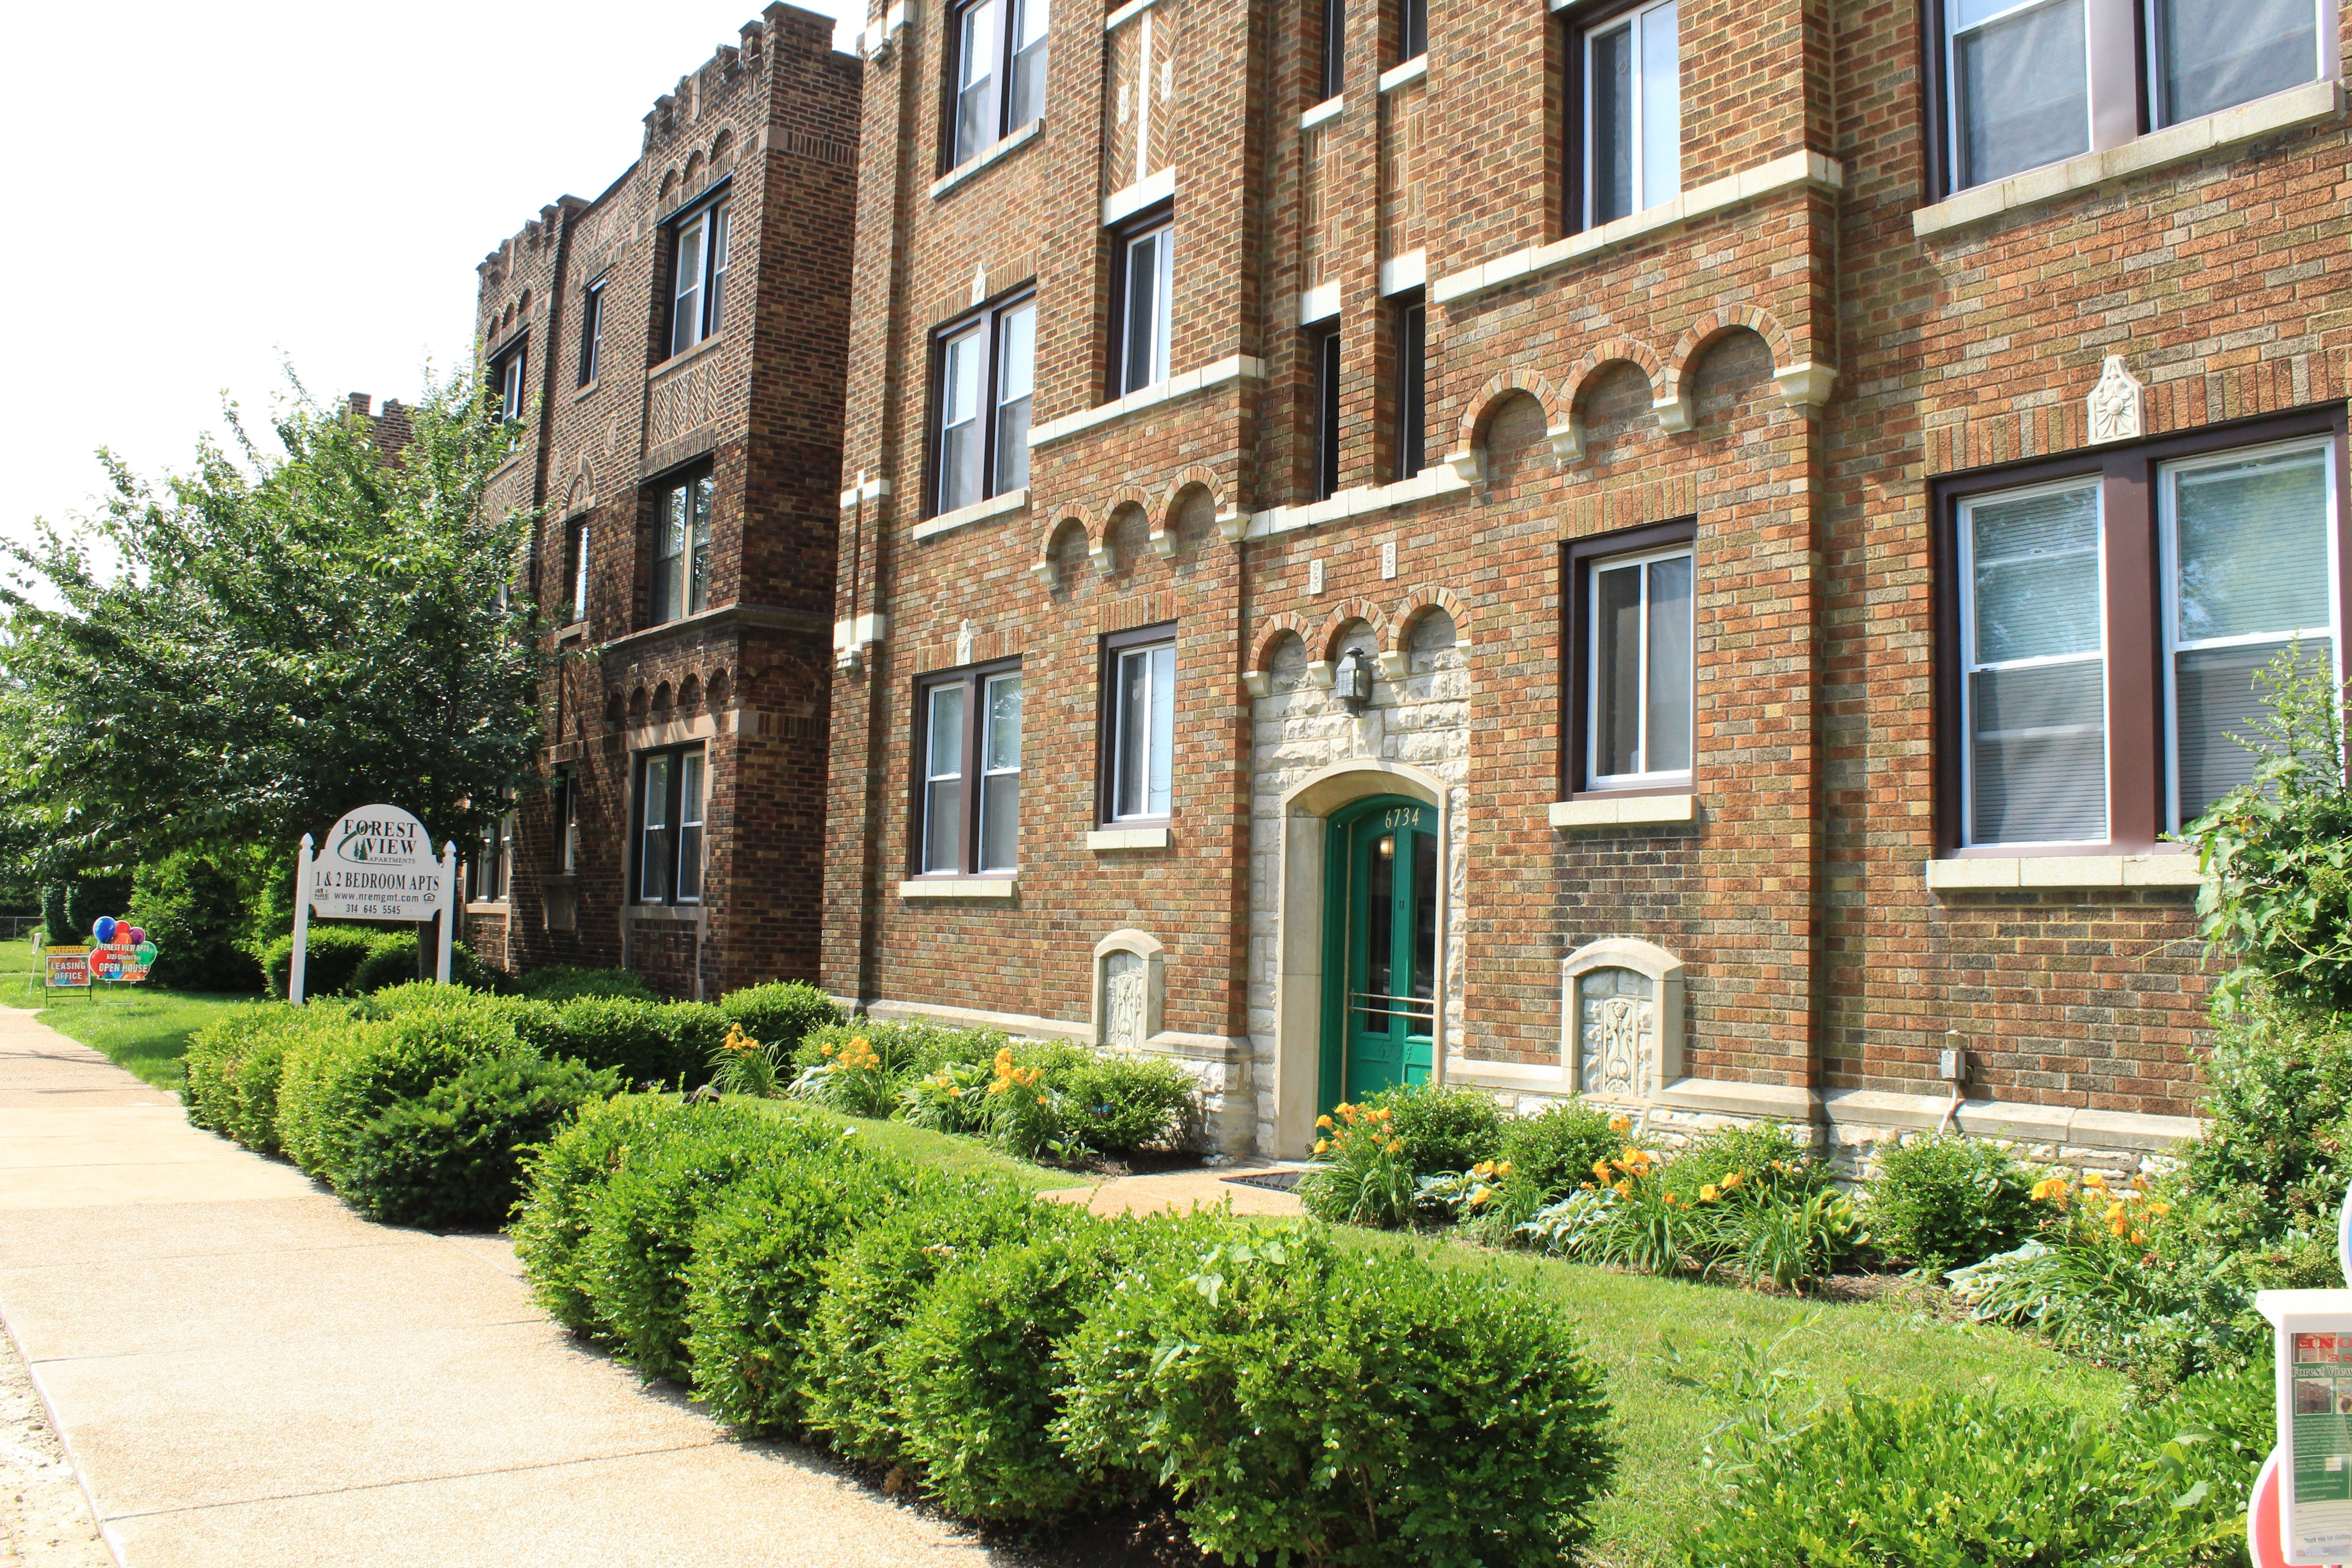 100 Best Apartments near WUSTL (with pictures)!